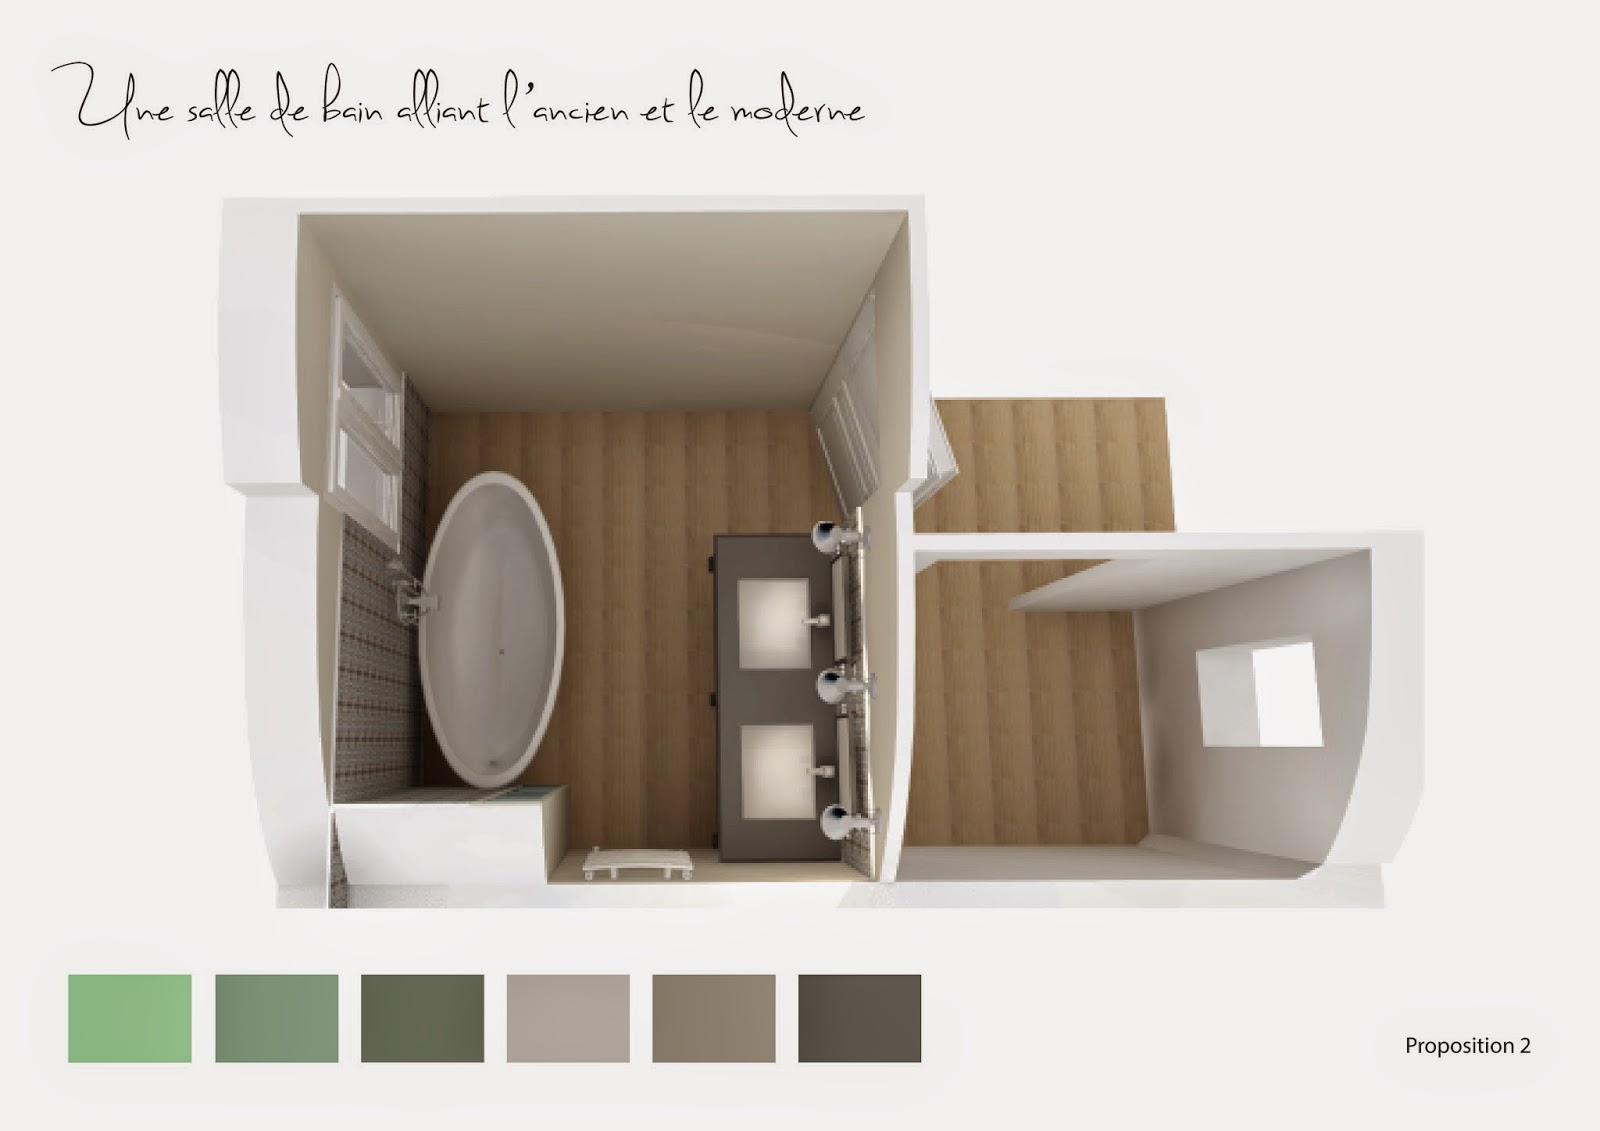 adc l 39 atelier d 39 c t am nagement int rieur design d 39 espace et d coration 1 jour 1 projet. Black Bedroom Furniture Sets. Home Design Ideas